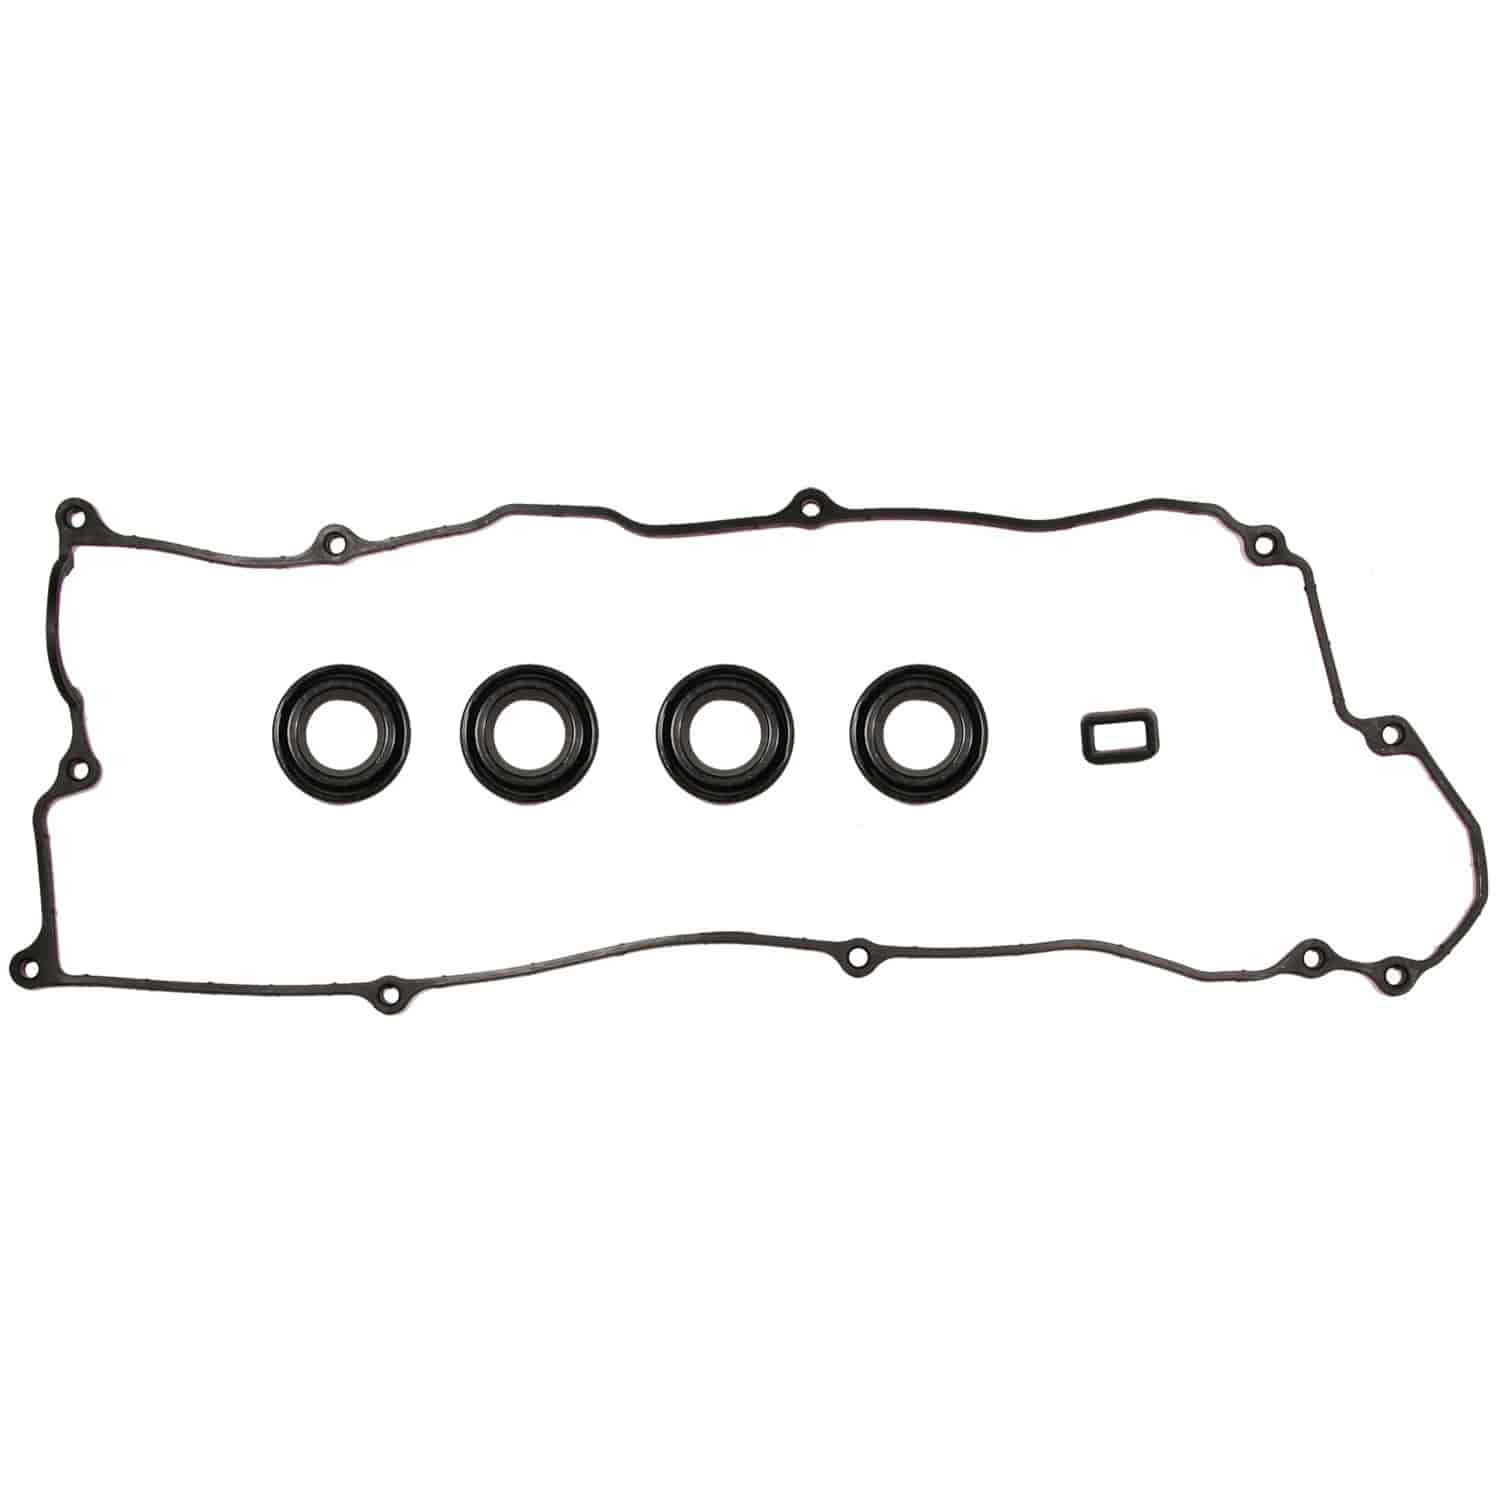 Clevite Mahle Vs Valve Cover Gasket Set For